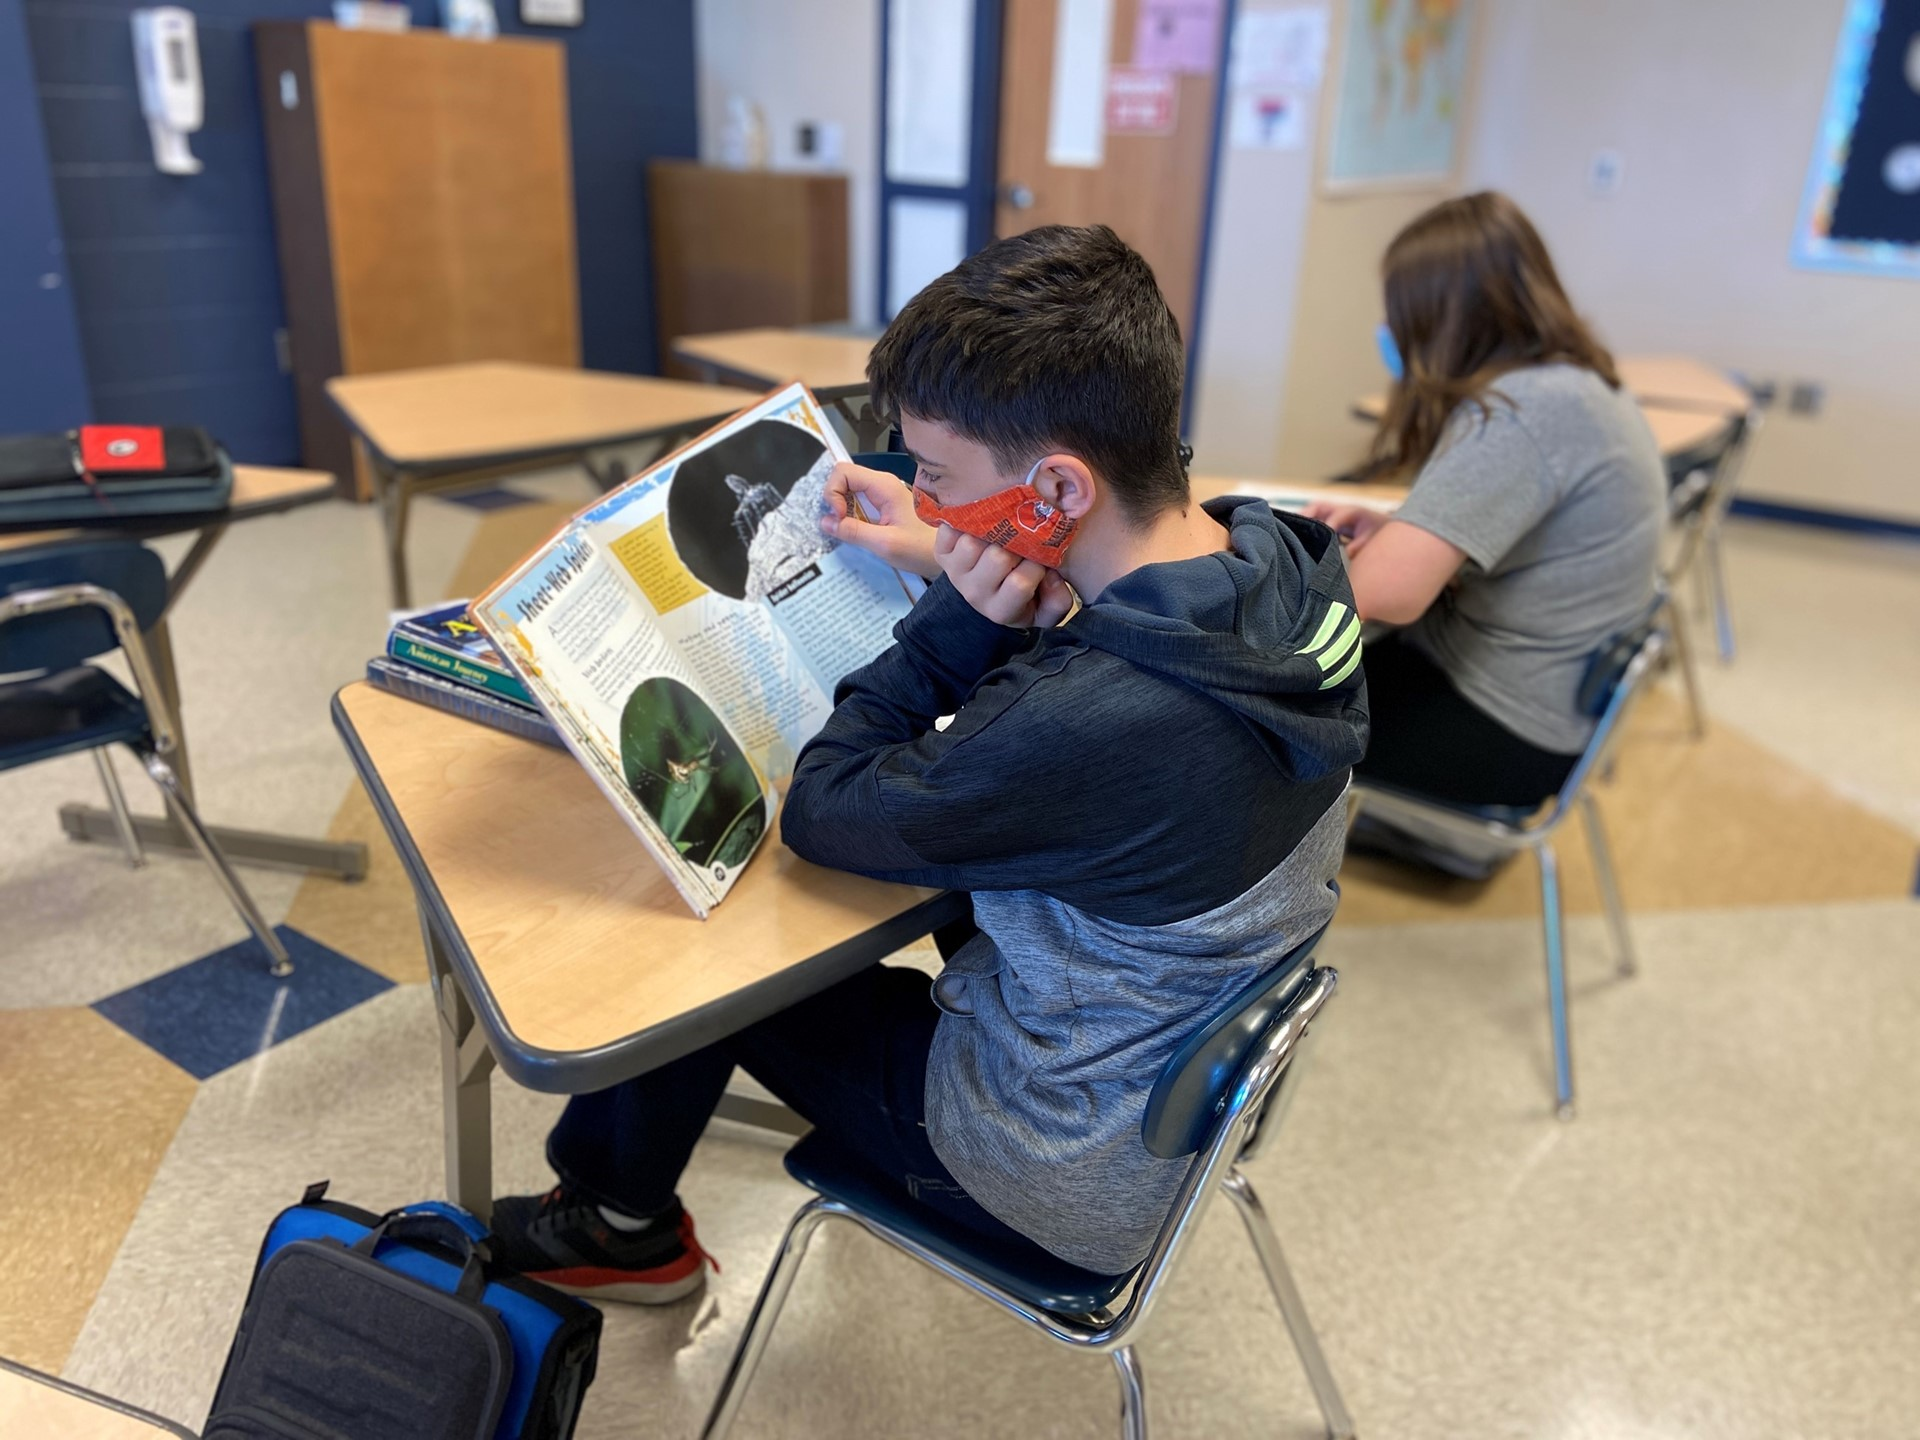 Student reads a textbook in class.